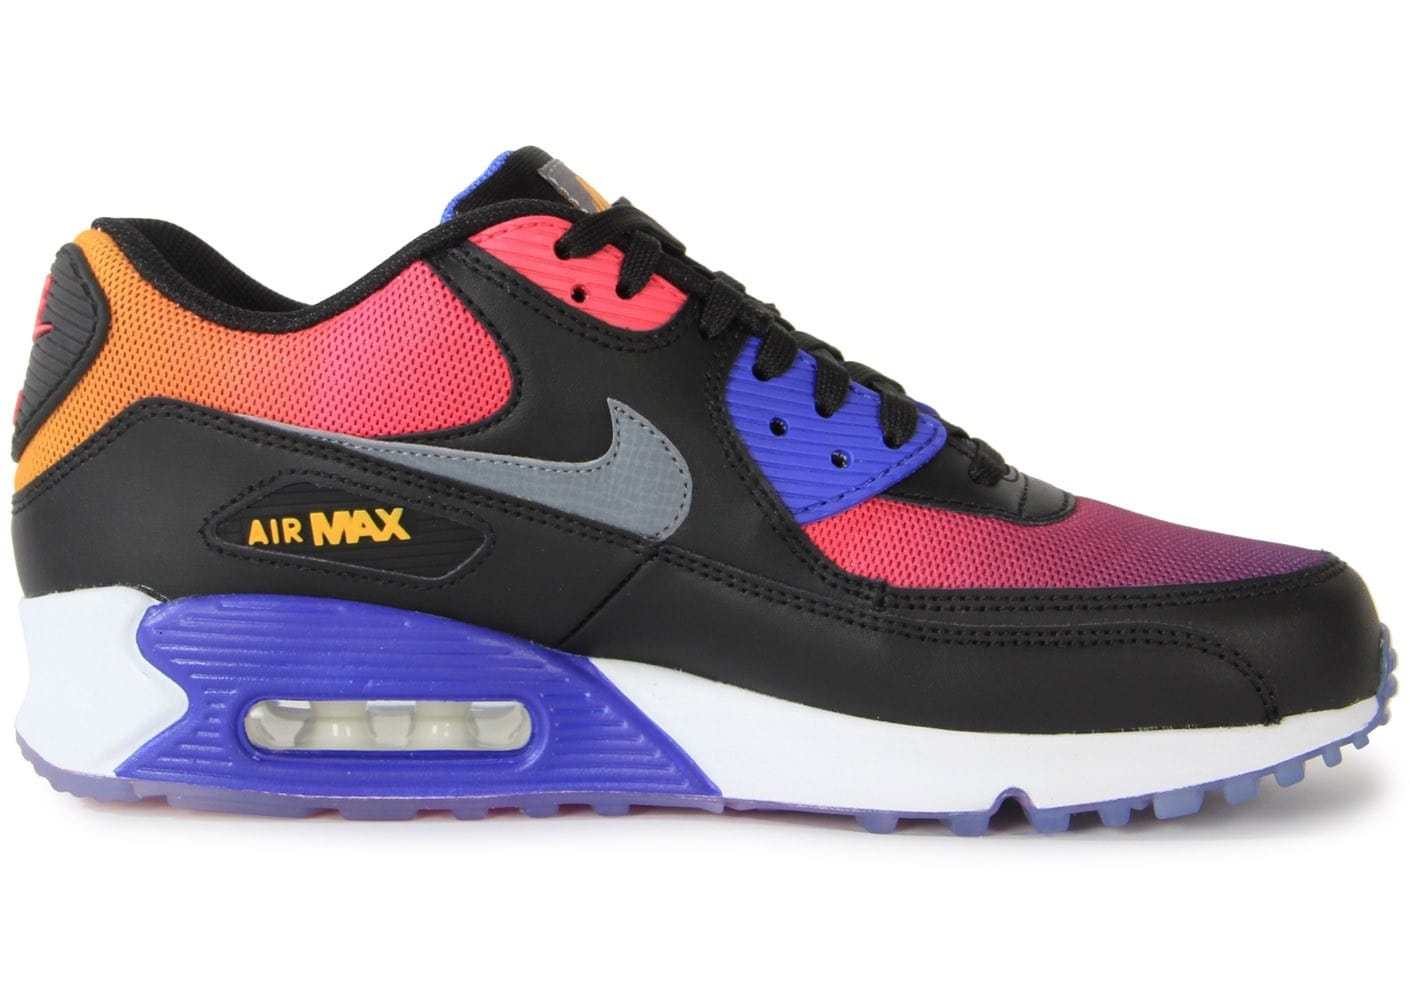 huge selection of da362 157e4 ... Chaussures Nike Air Max 90 Sd Sunset vue dessous ...